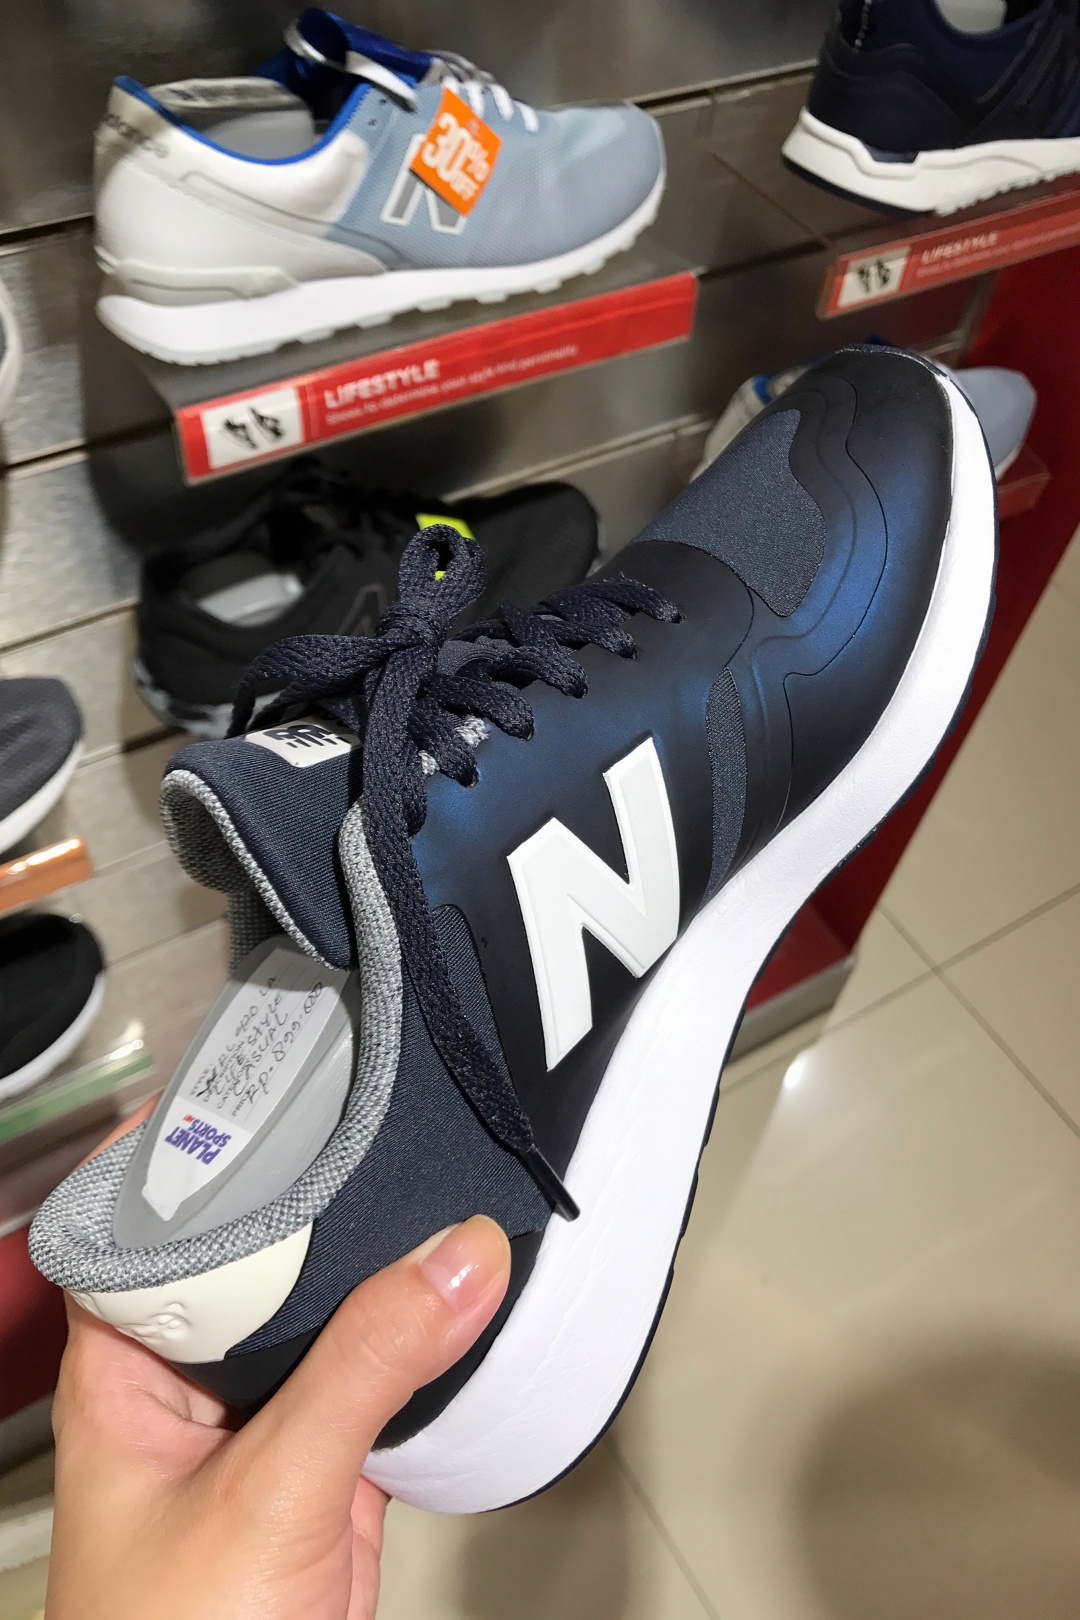 New Balance | Beachwalk Shopping Center | joanne-khoo.com